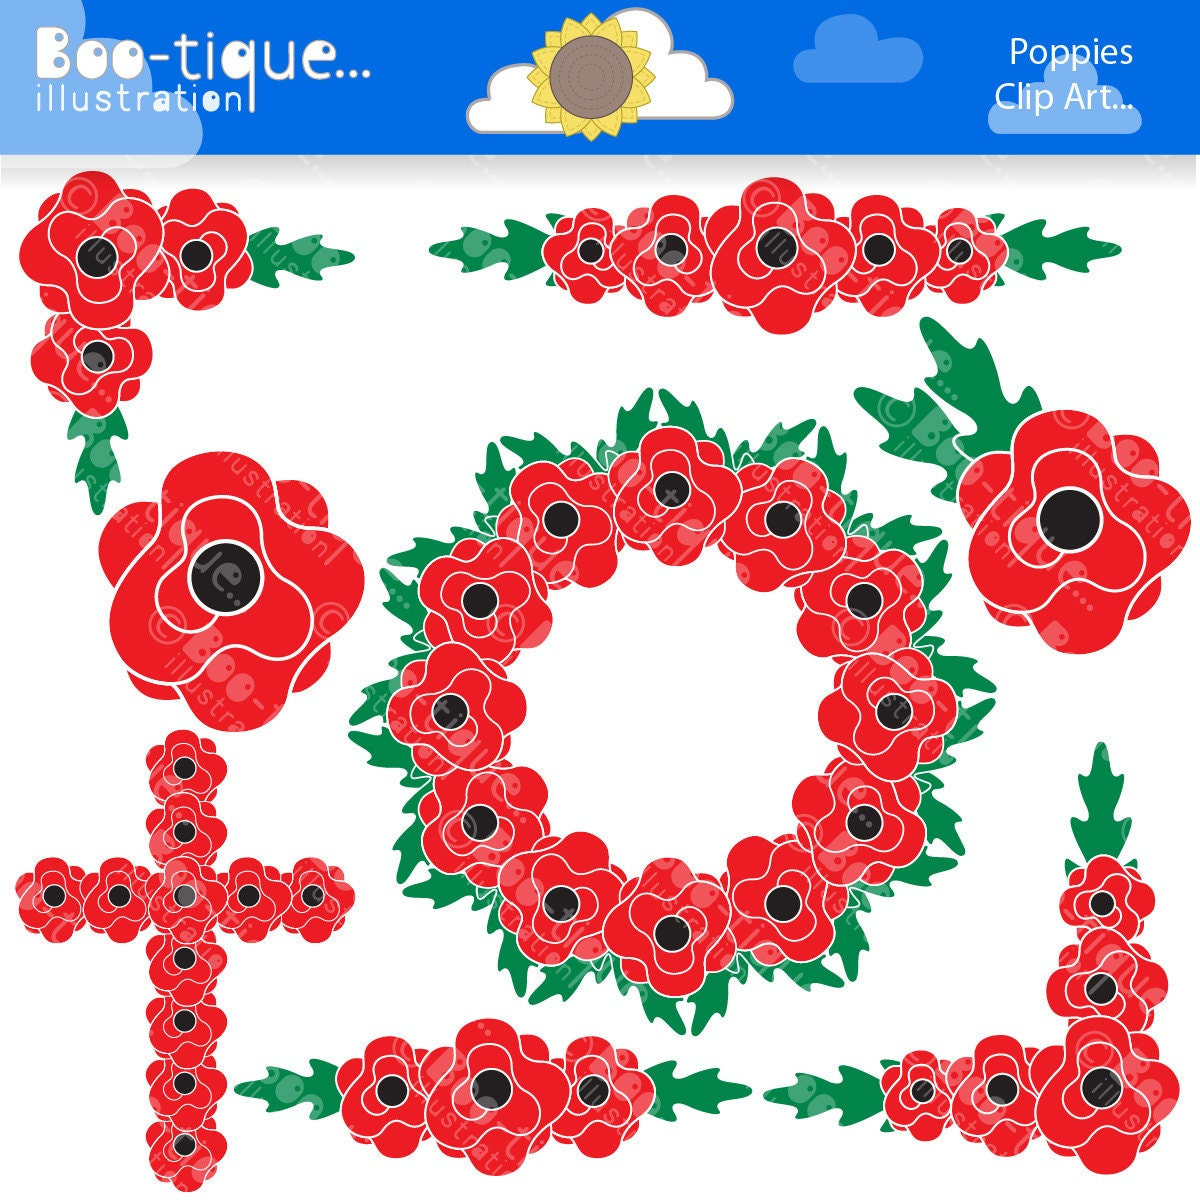 Poppies Digital Clpart Poppy Clipart Poppies Clip Art Remembrance